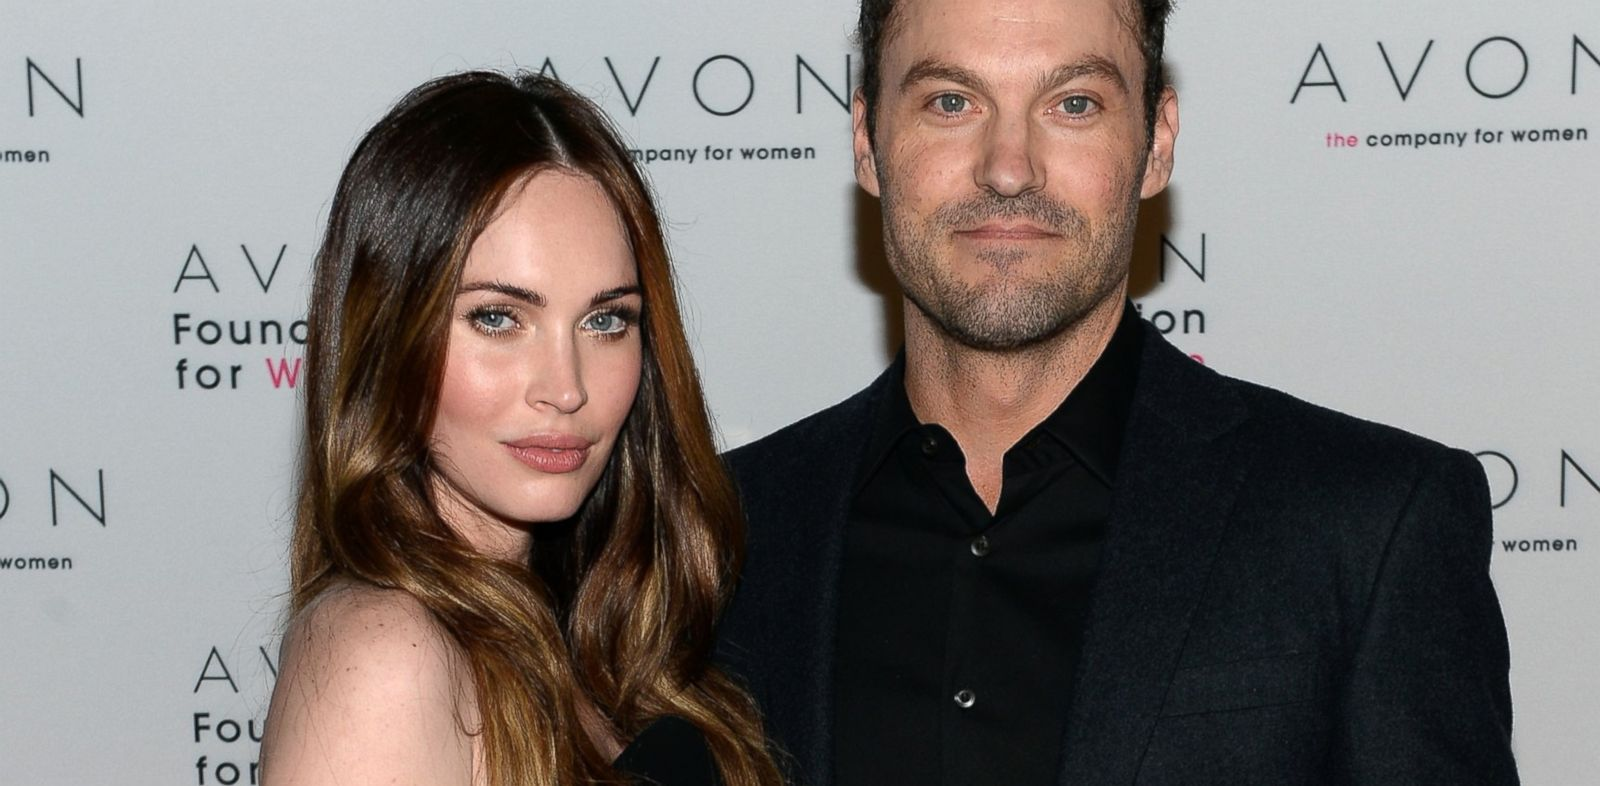 PHOTO: Megan Fox and Brian Austin Green at The Morgan Library & Museum in New York at the Avon Foundation launch of its #SeeTheSigns of Domestic Violence global social media campaign.